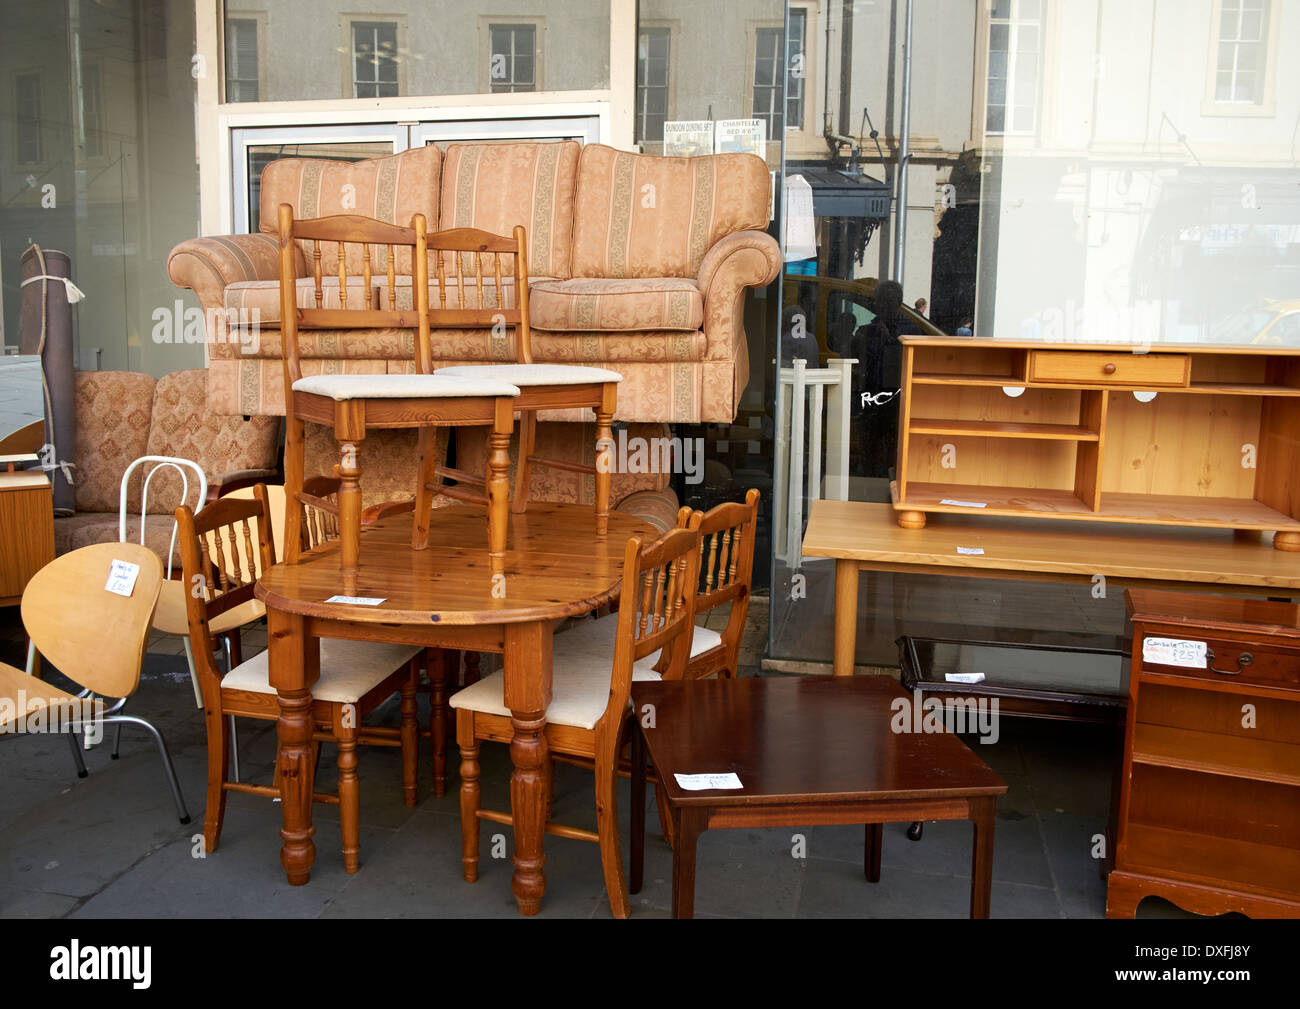 Used Second Hand Furniture On Sale On A Uk High Street Stock Photo